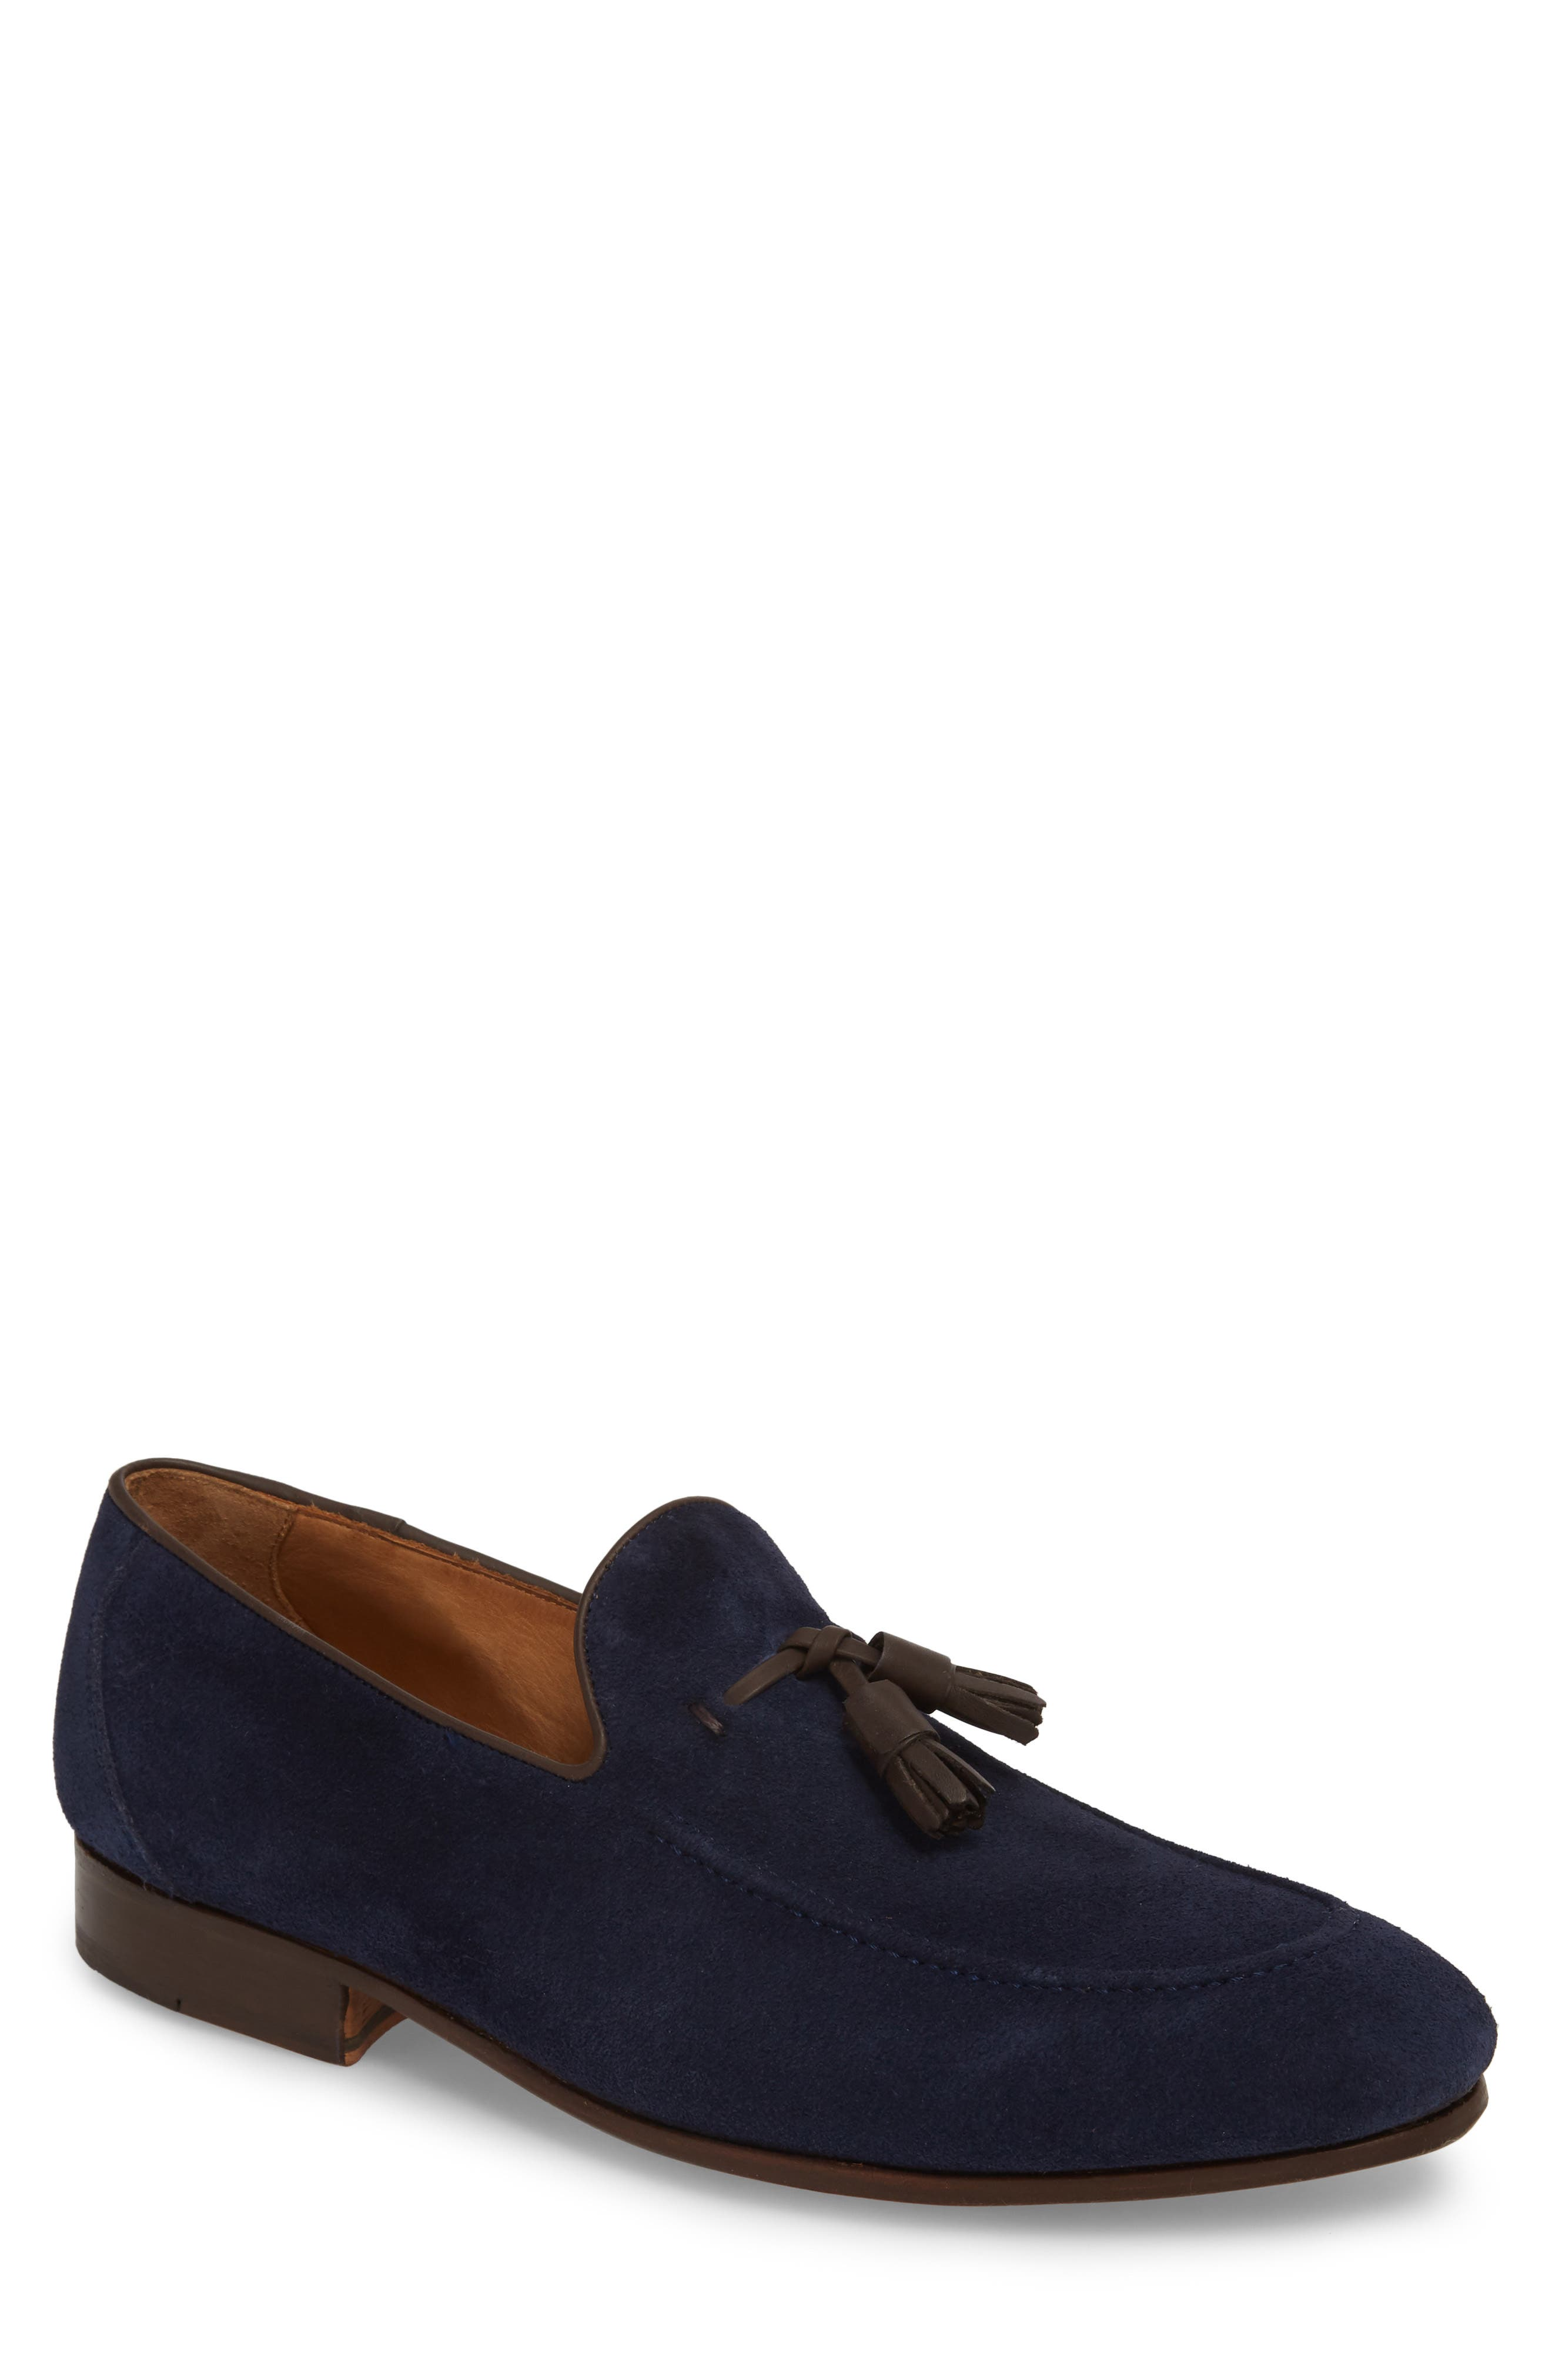 Ario Tassel Loafer,                             Main thumbnail 1, color,                             NAVY SUEDE